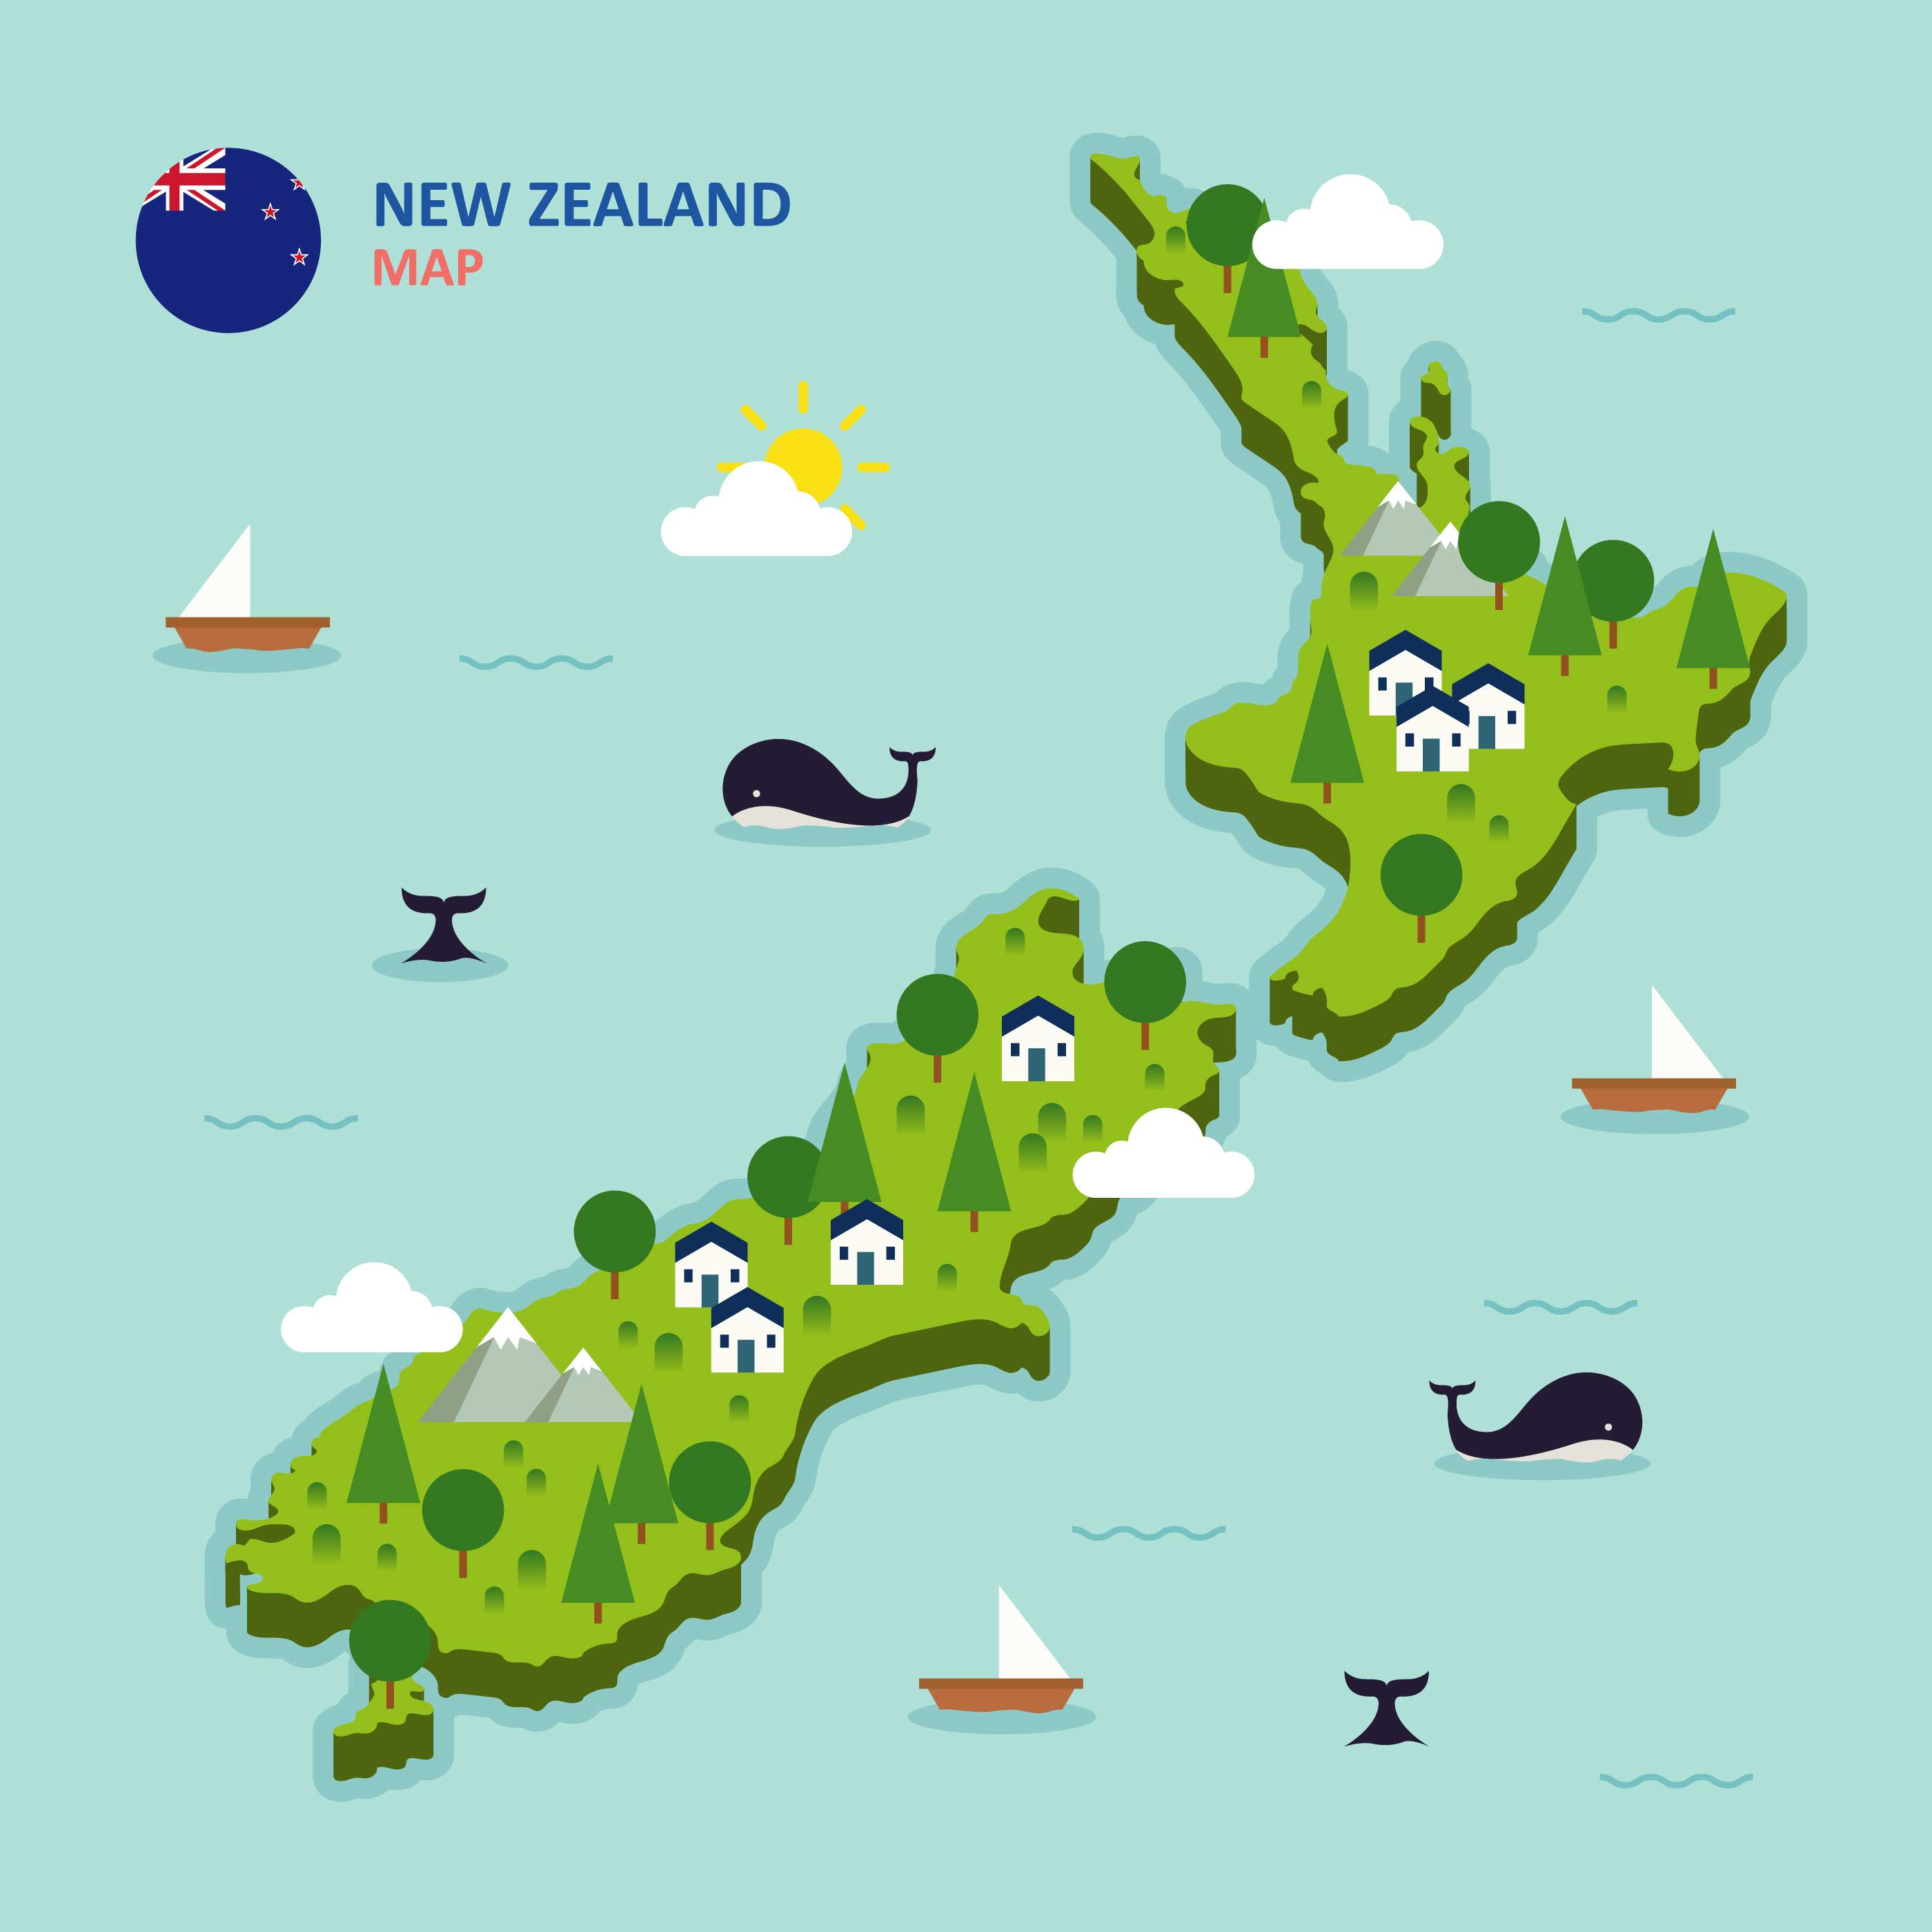 Line Drawing New Zealand Map : New zealand map illustration download free vector art